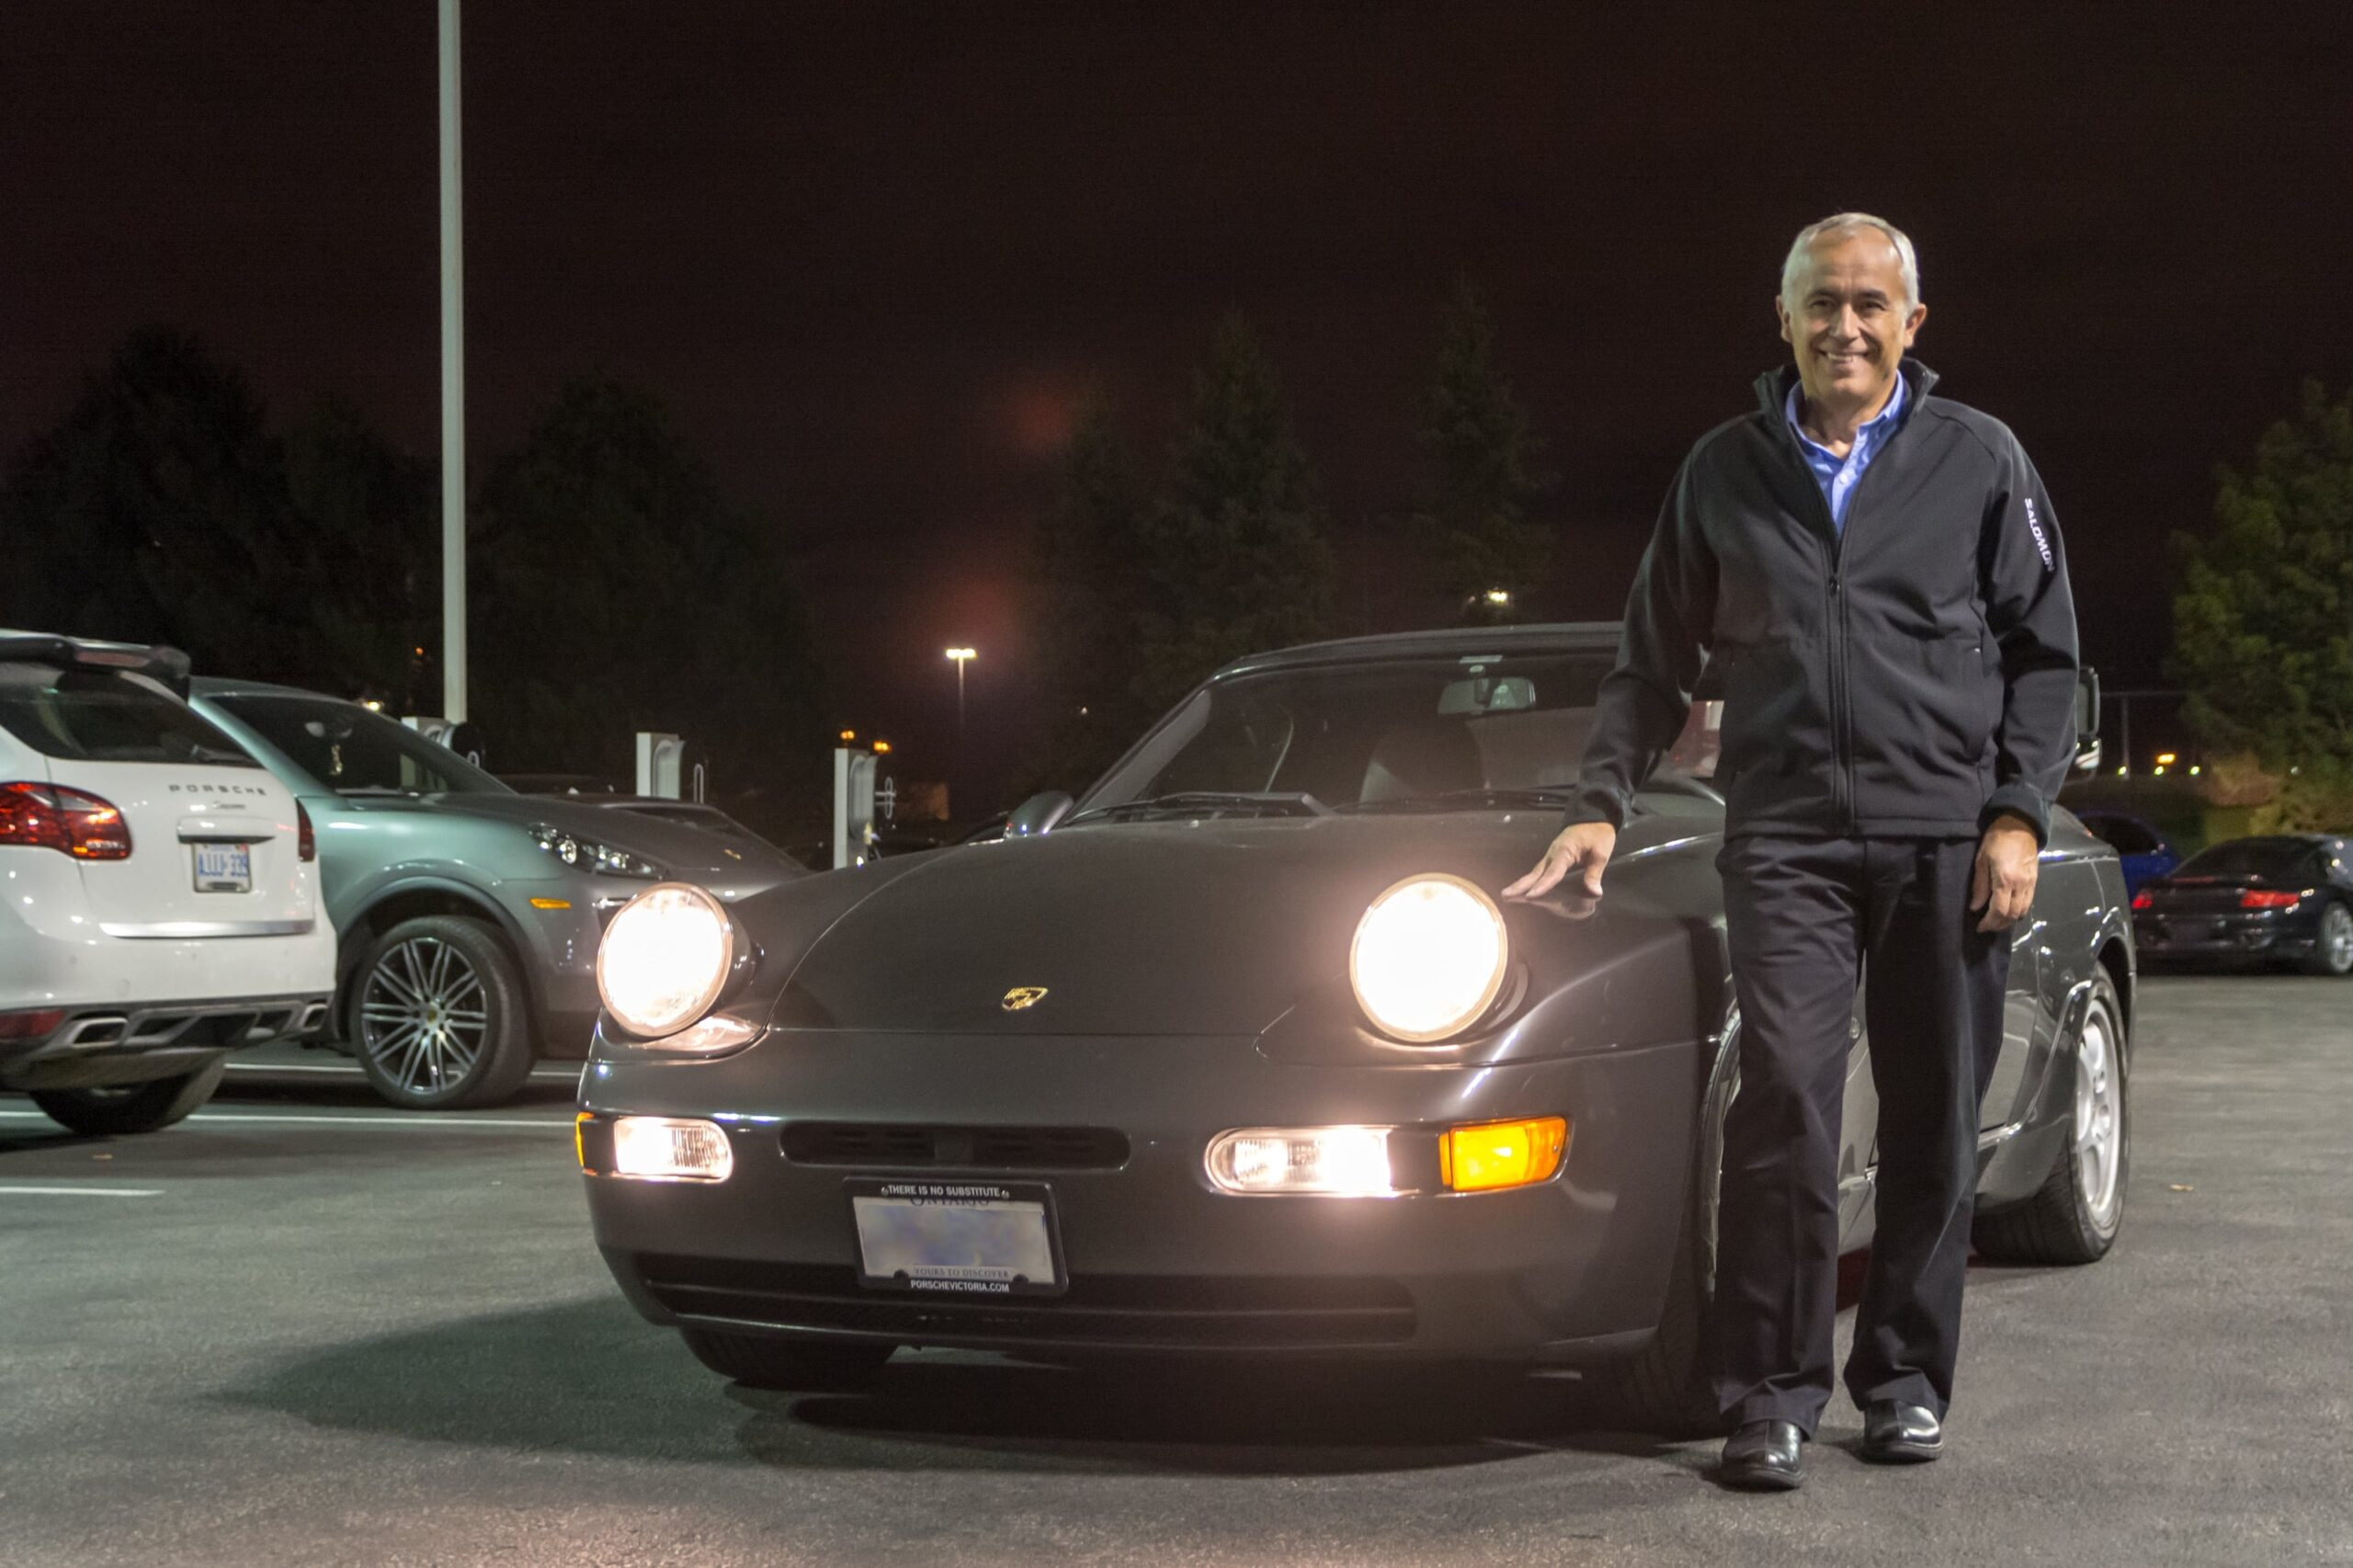 40 YEARS of WATER COOLED TRANSAXLE PORSCHES: